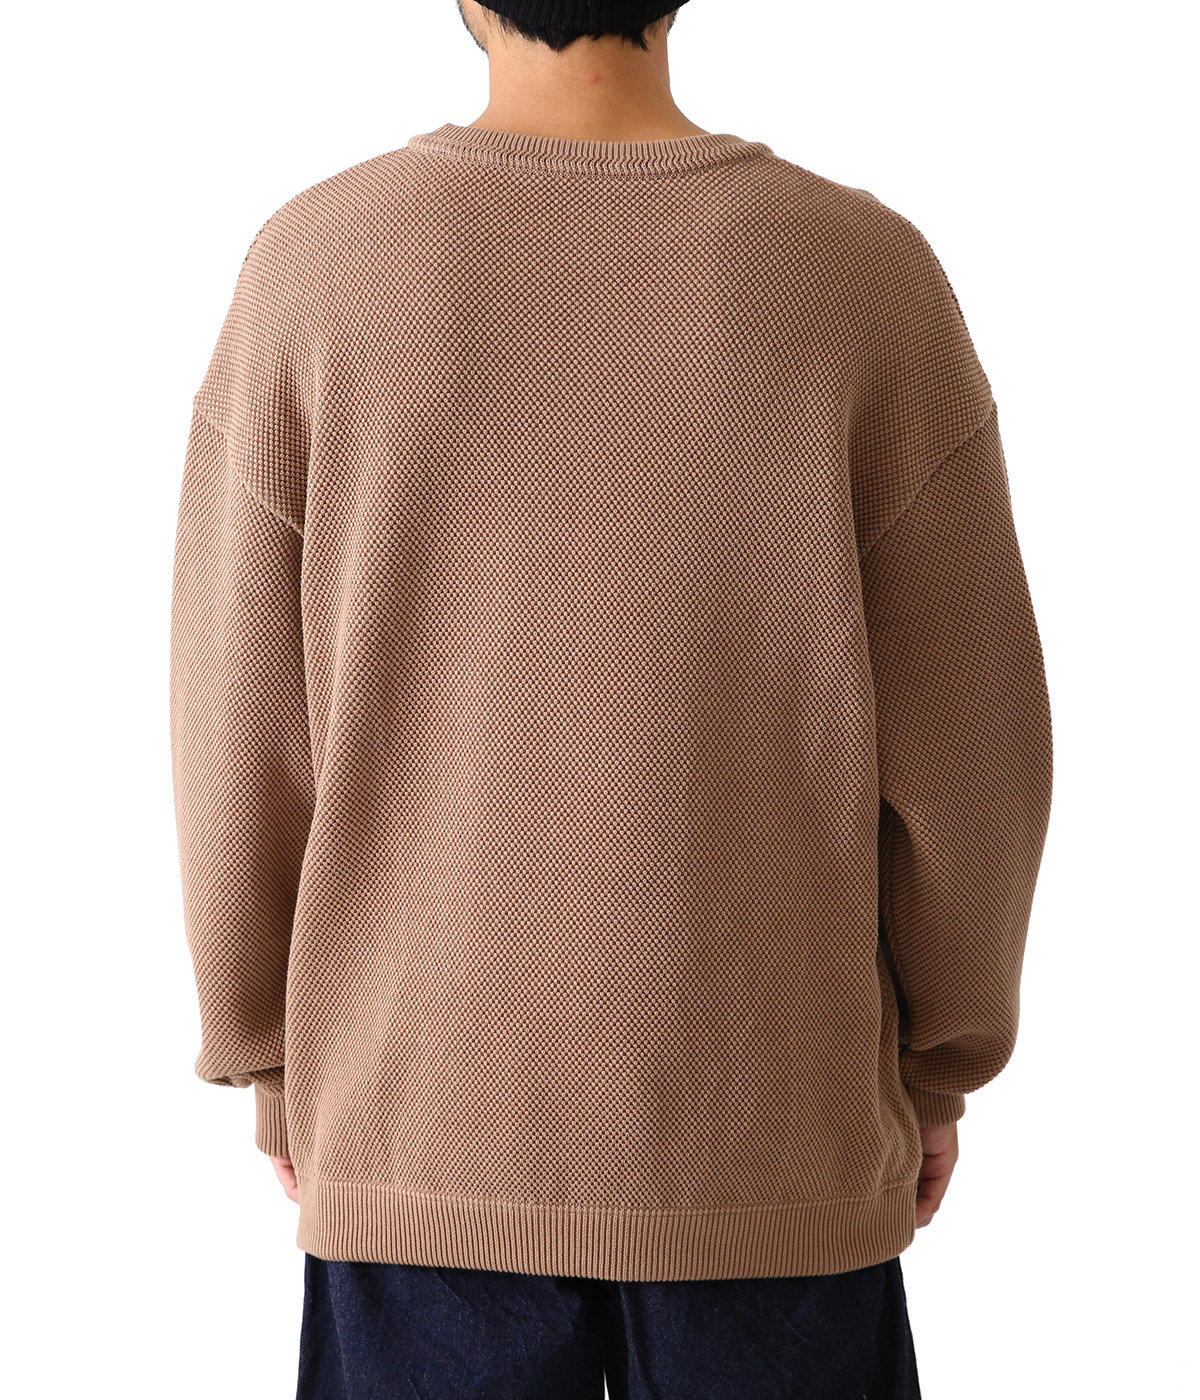 Moss stitch L/S sweat